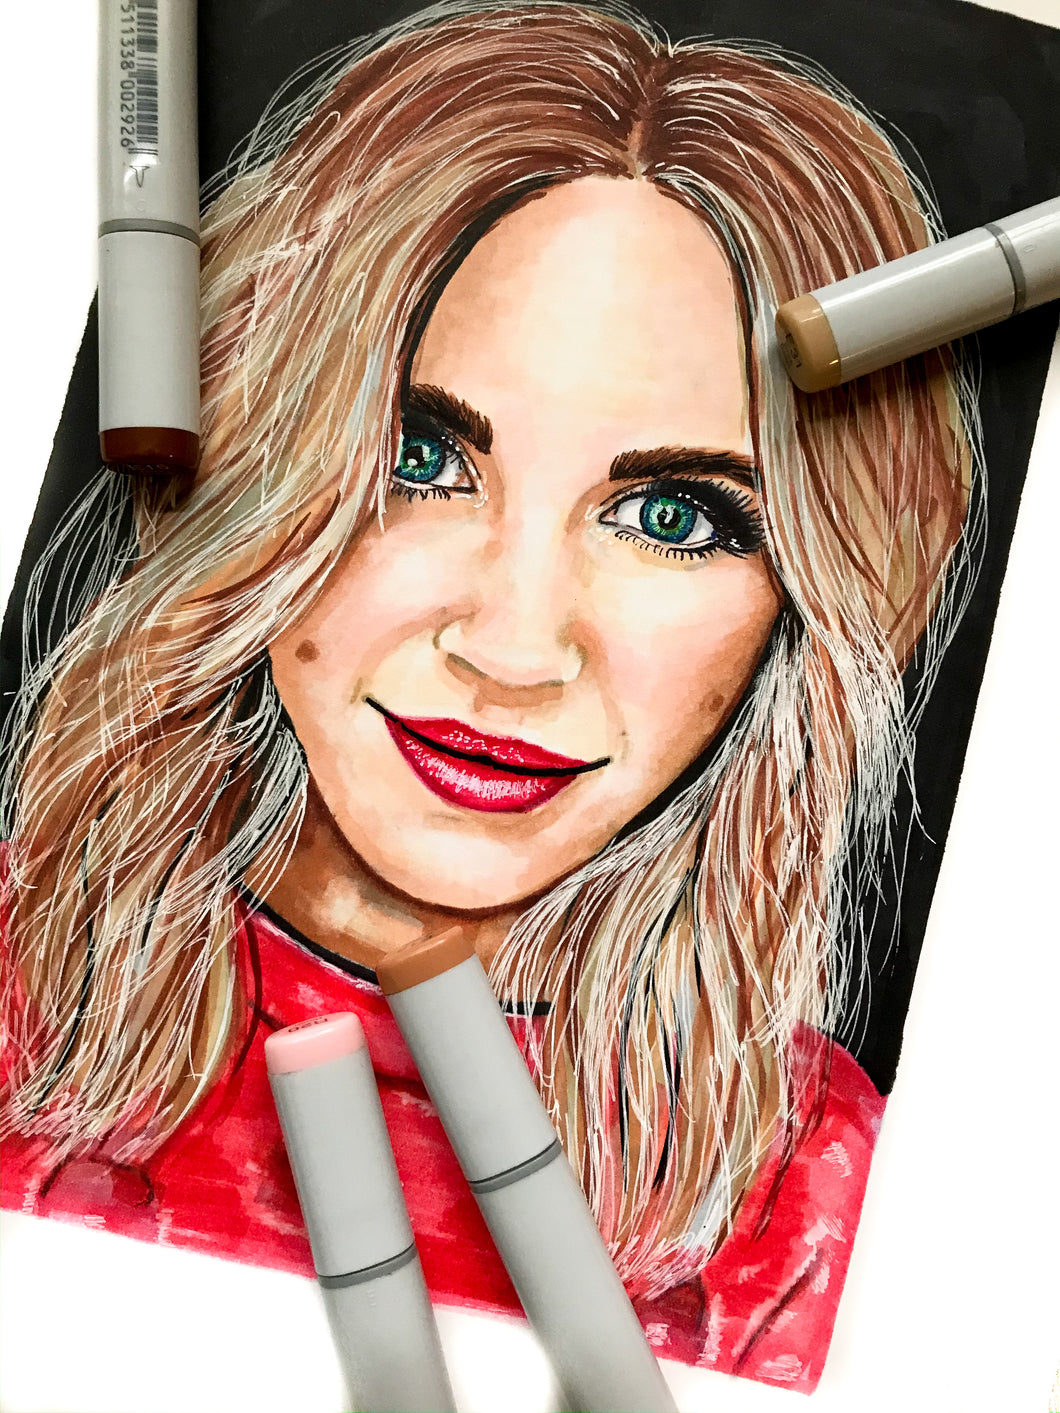 Copic Marker Portrait